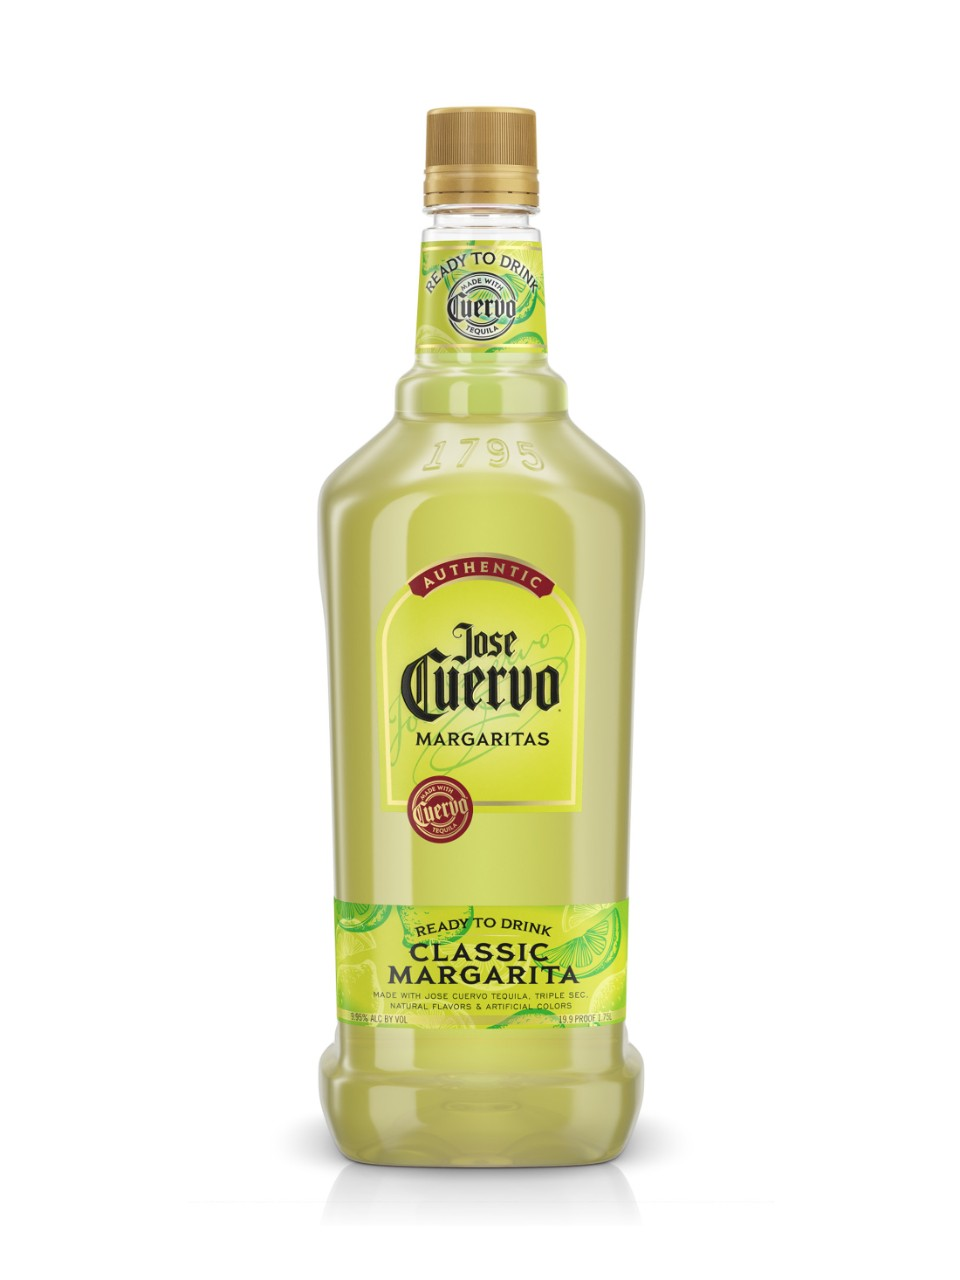 Jose Cuervo Authentic Margarita from LCBO